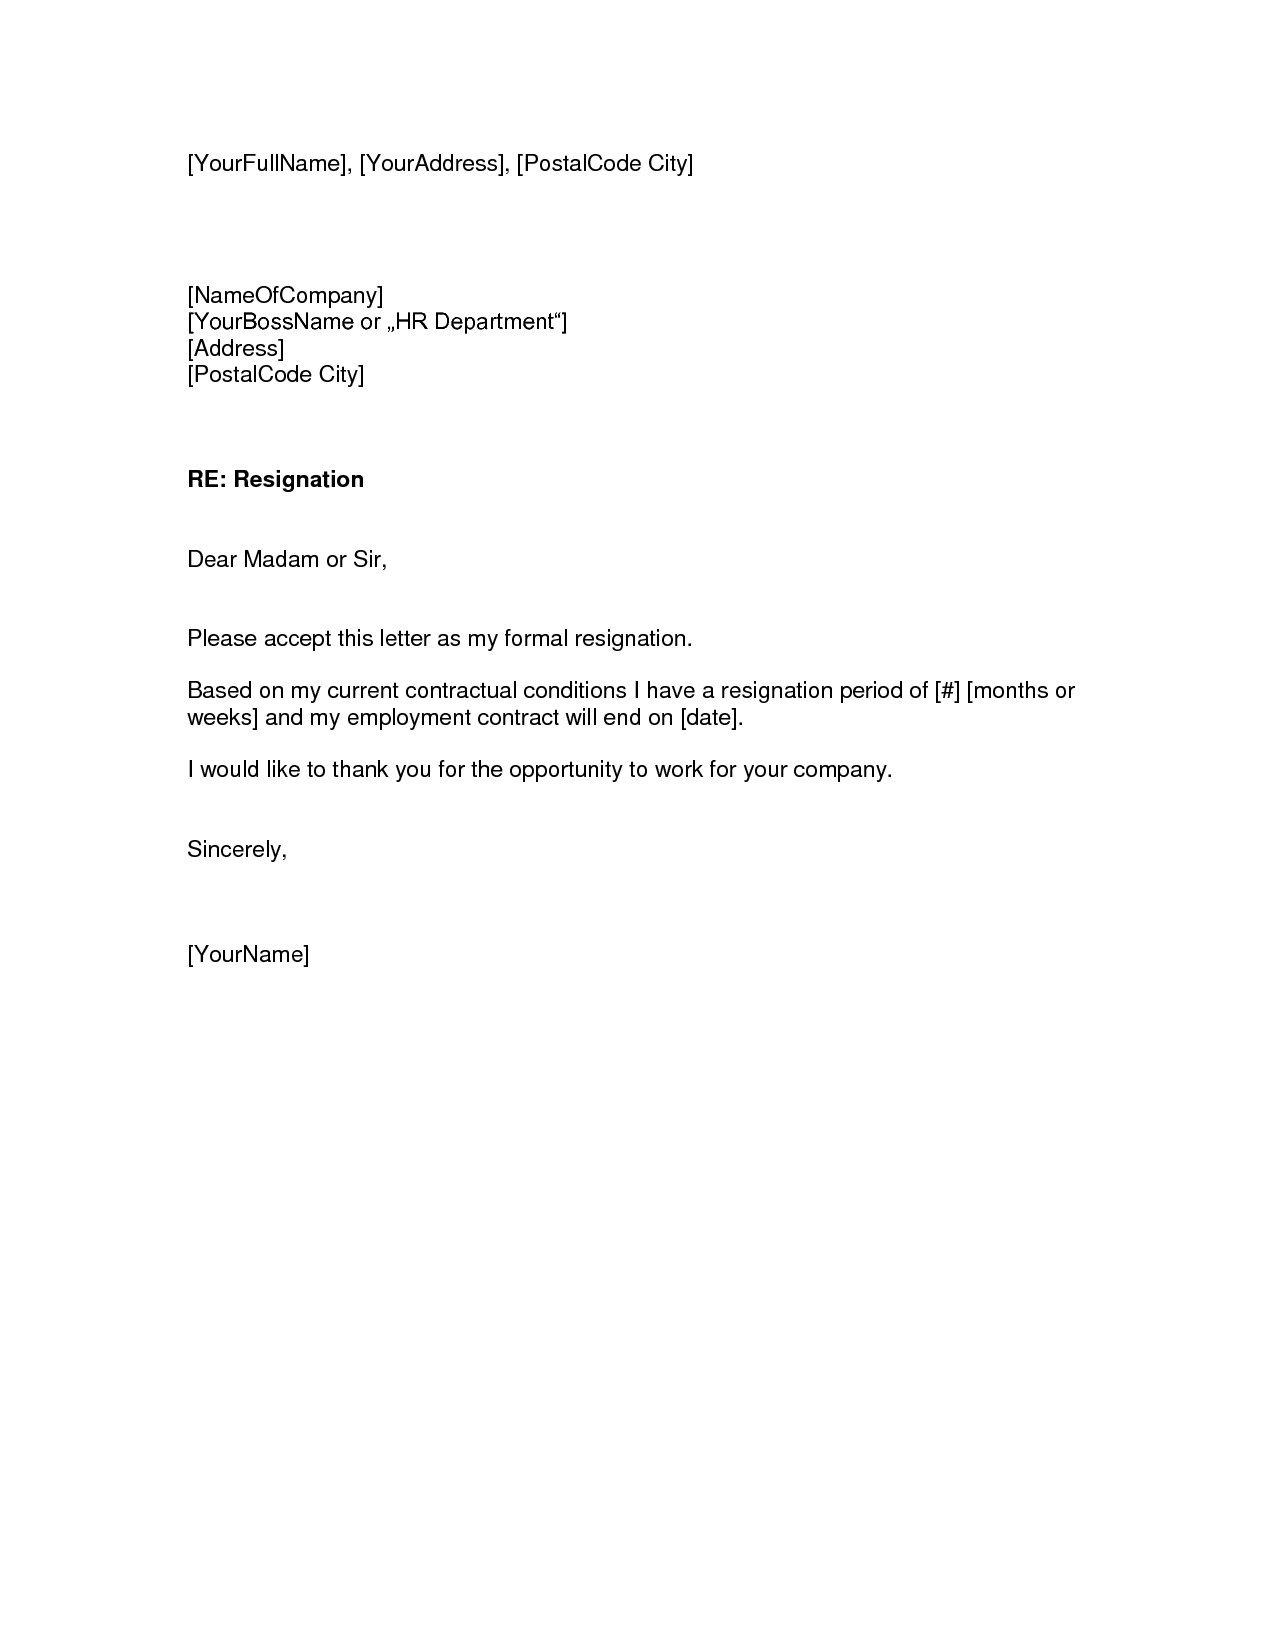 Sample Resignation Letter Template 2 Resignation Letter Format: Full Name  Free Resignation Letter . Throughout Resignation Letter Templates